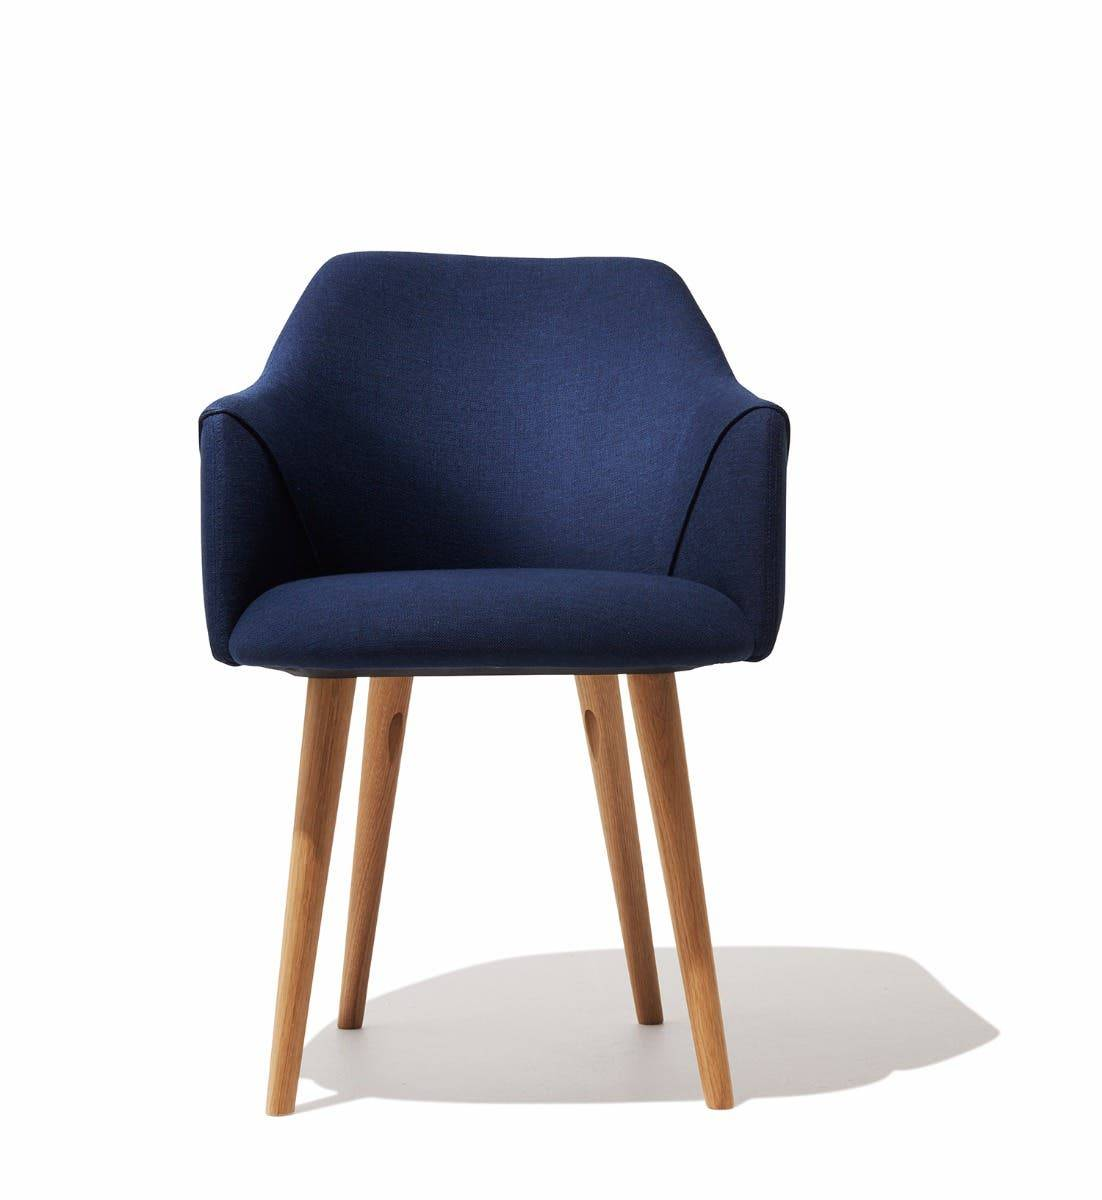 Industry West Canary Dining Chair